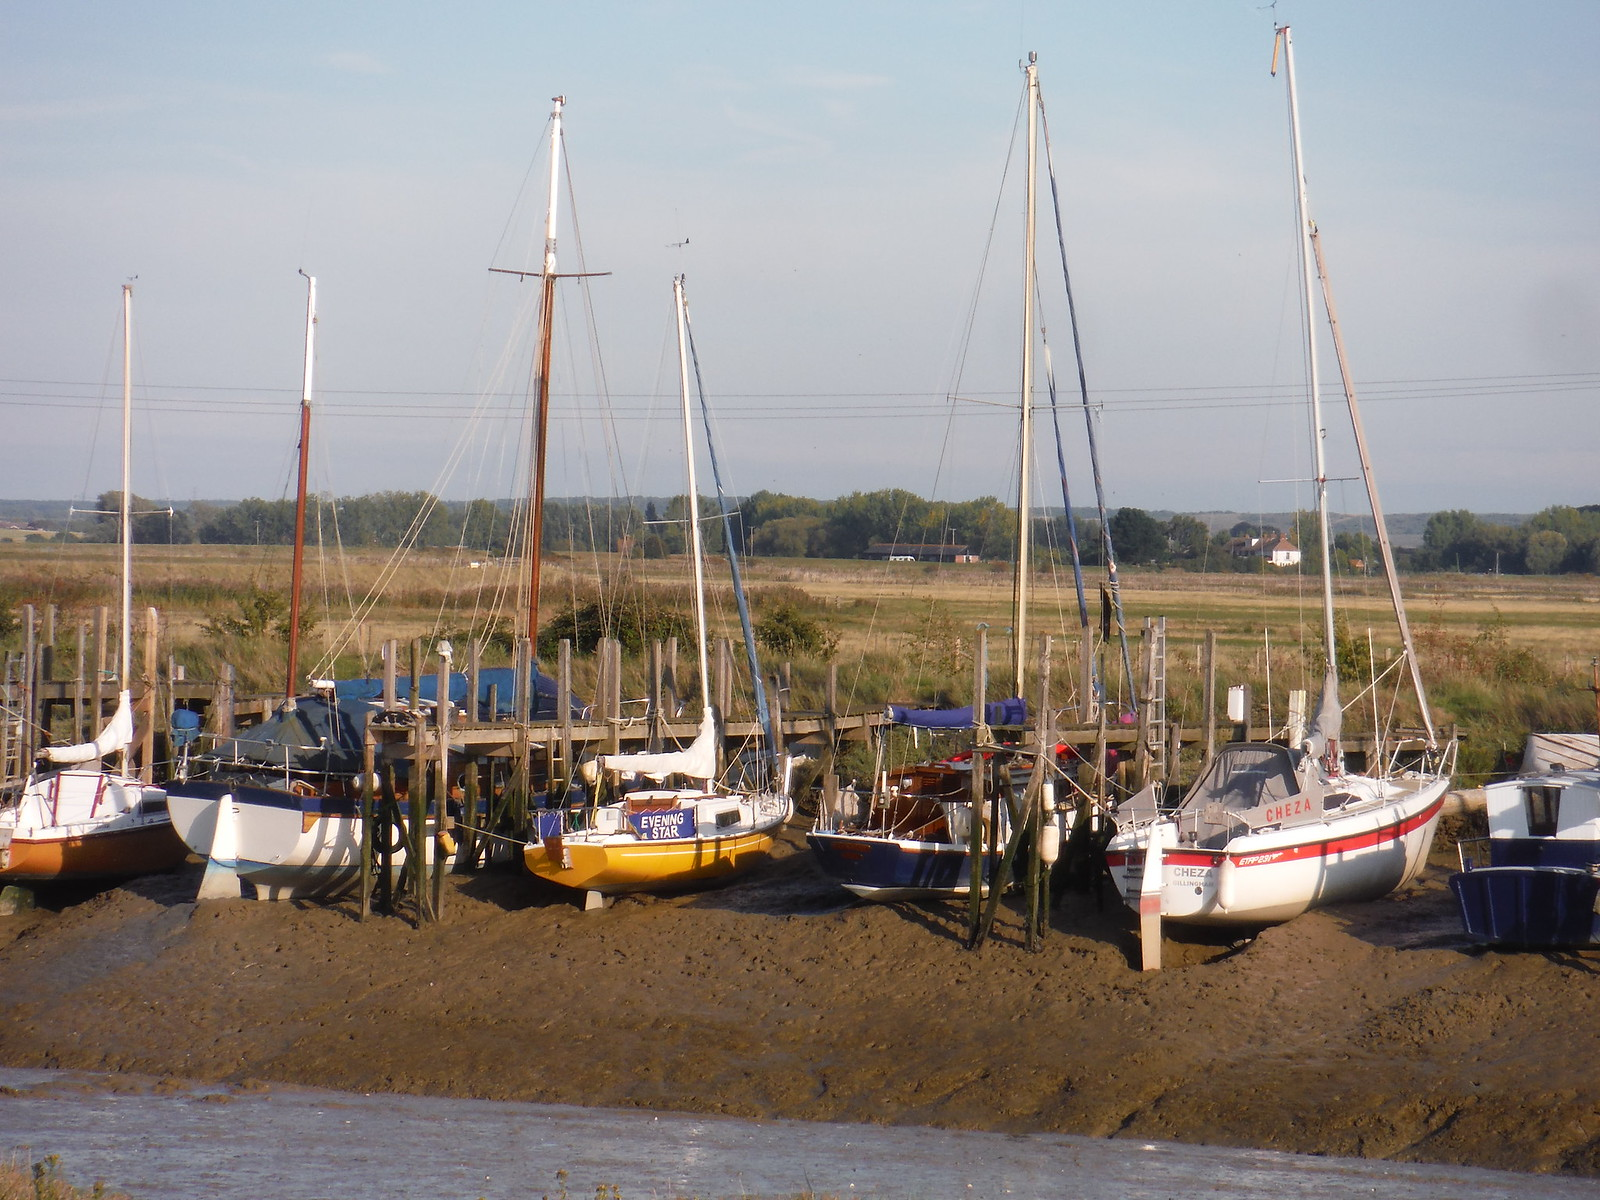 Boats on Oare Creek at low tide SWC Walk 299 - Teynham to Faversham